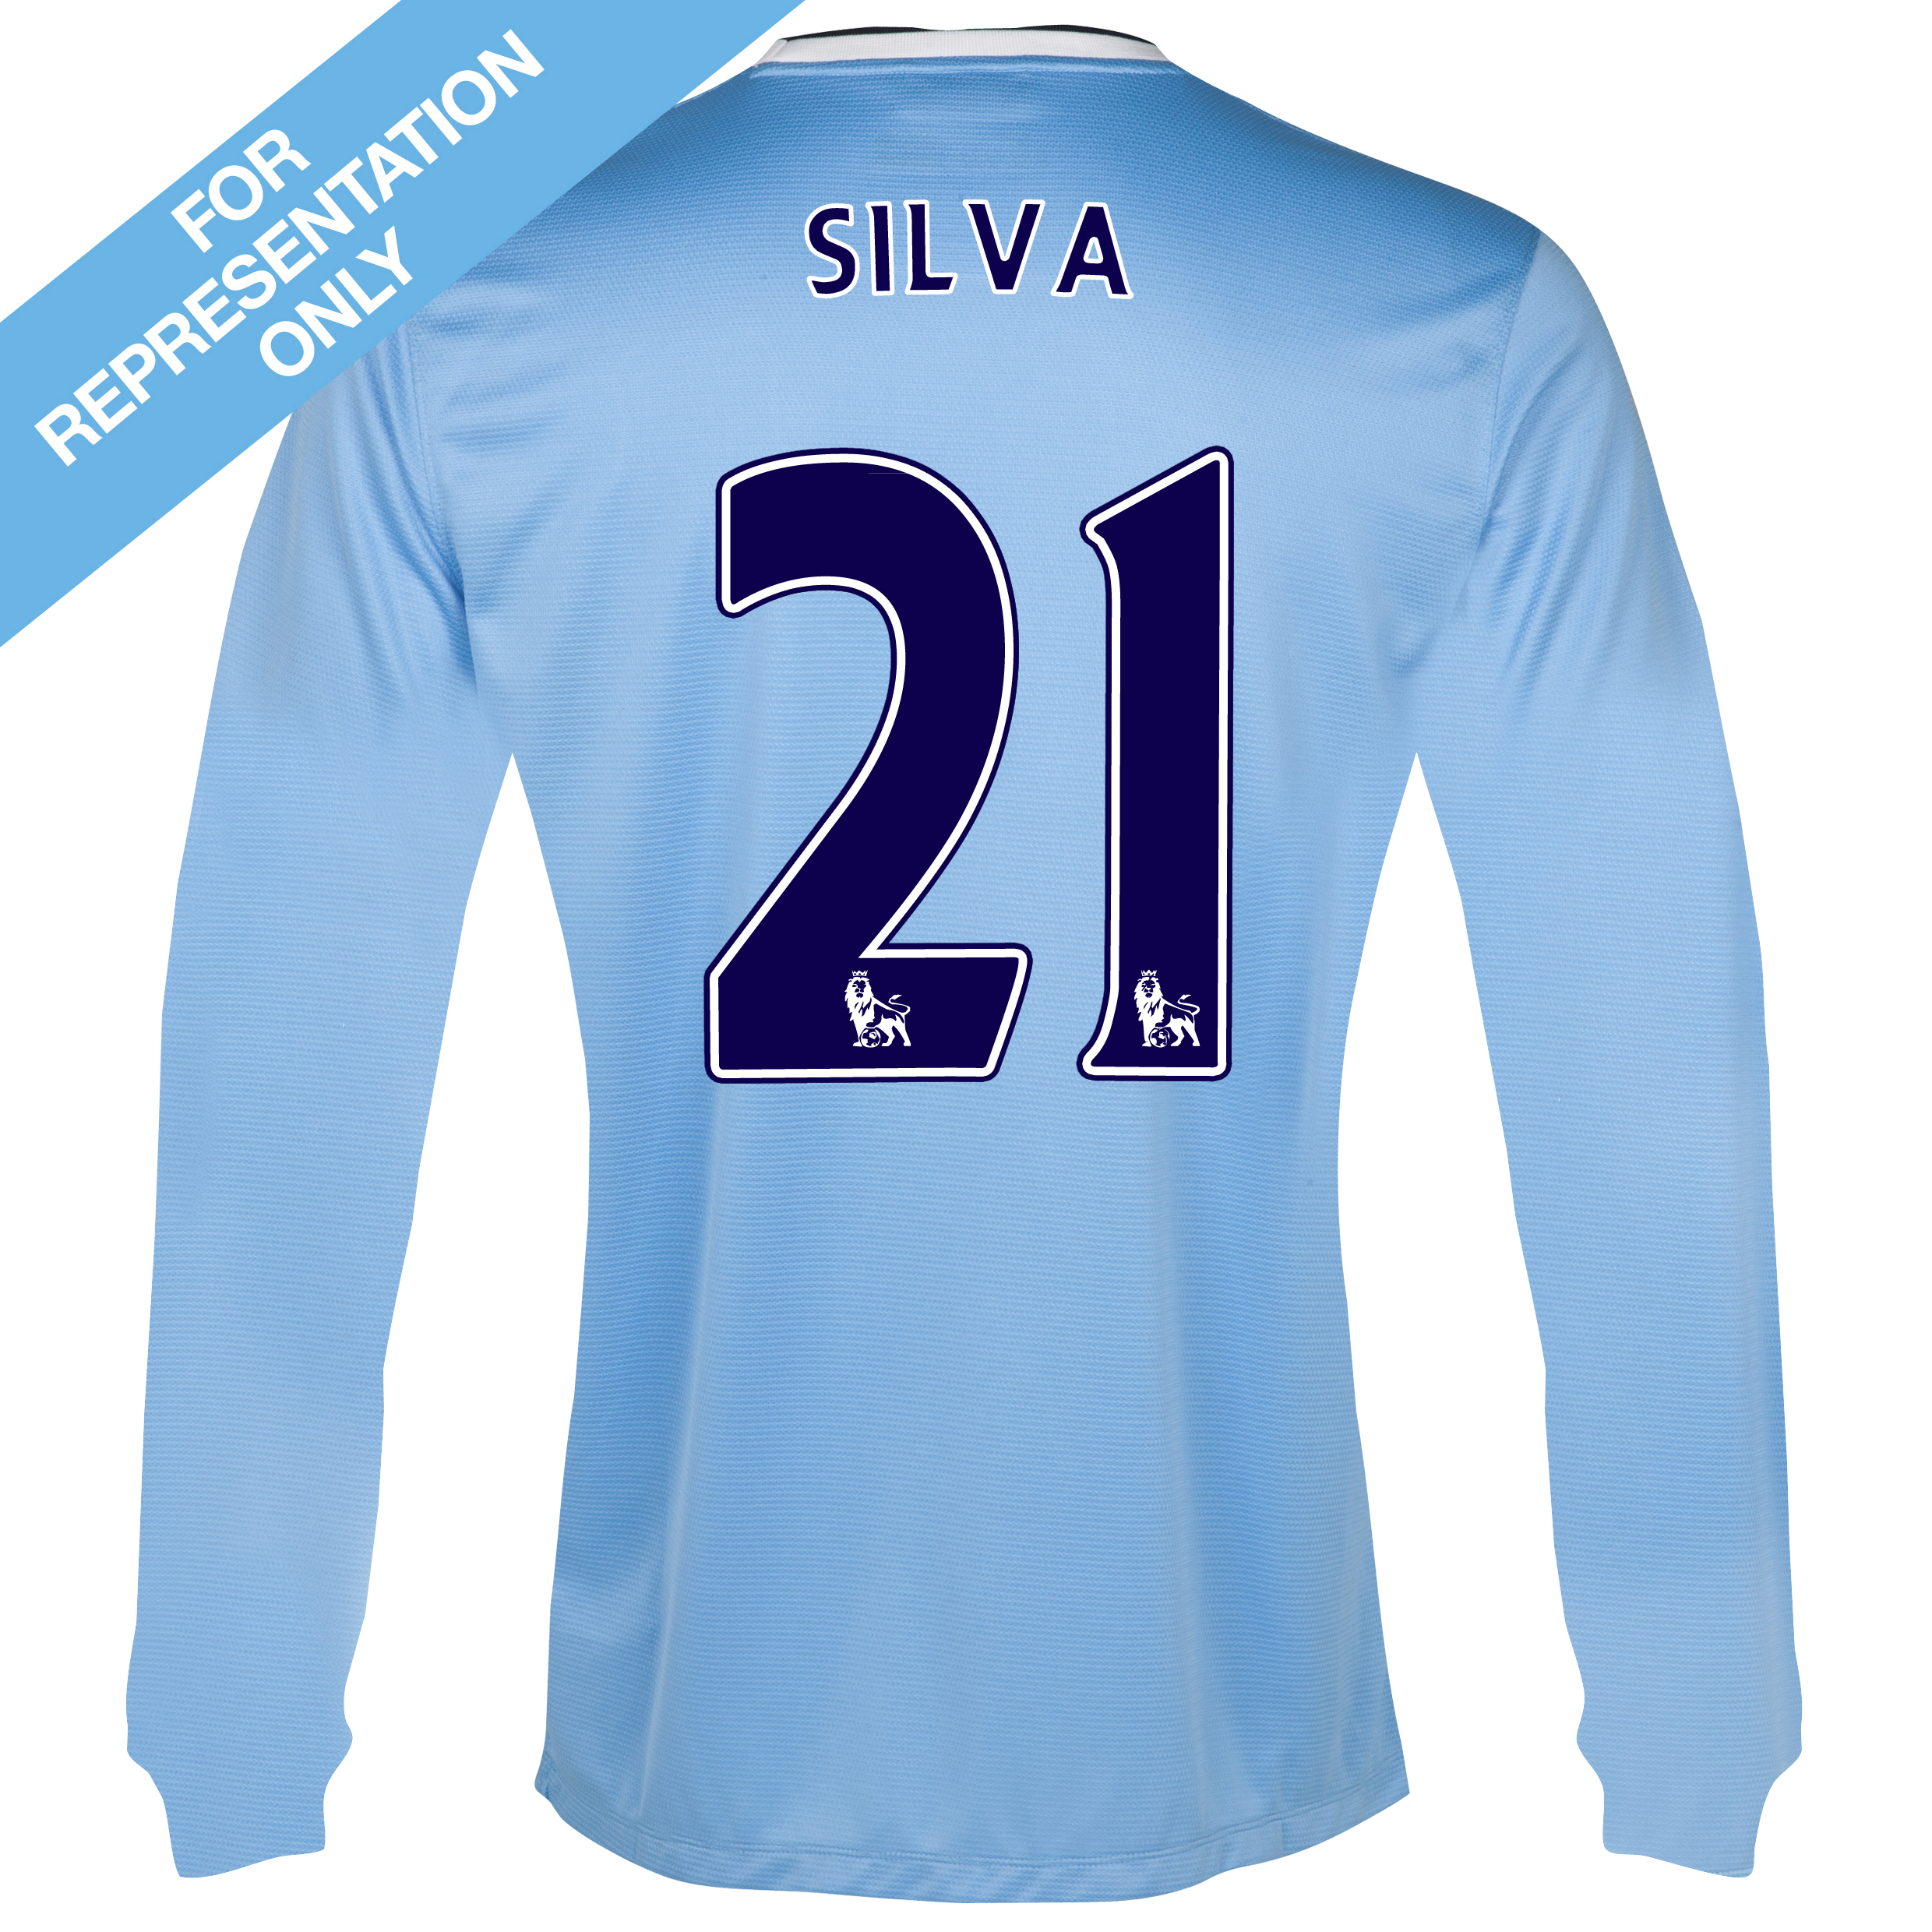 Manchester City Home Shirt 2013/14 - Long Sleeved with Silva 21 printing